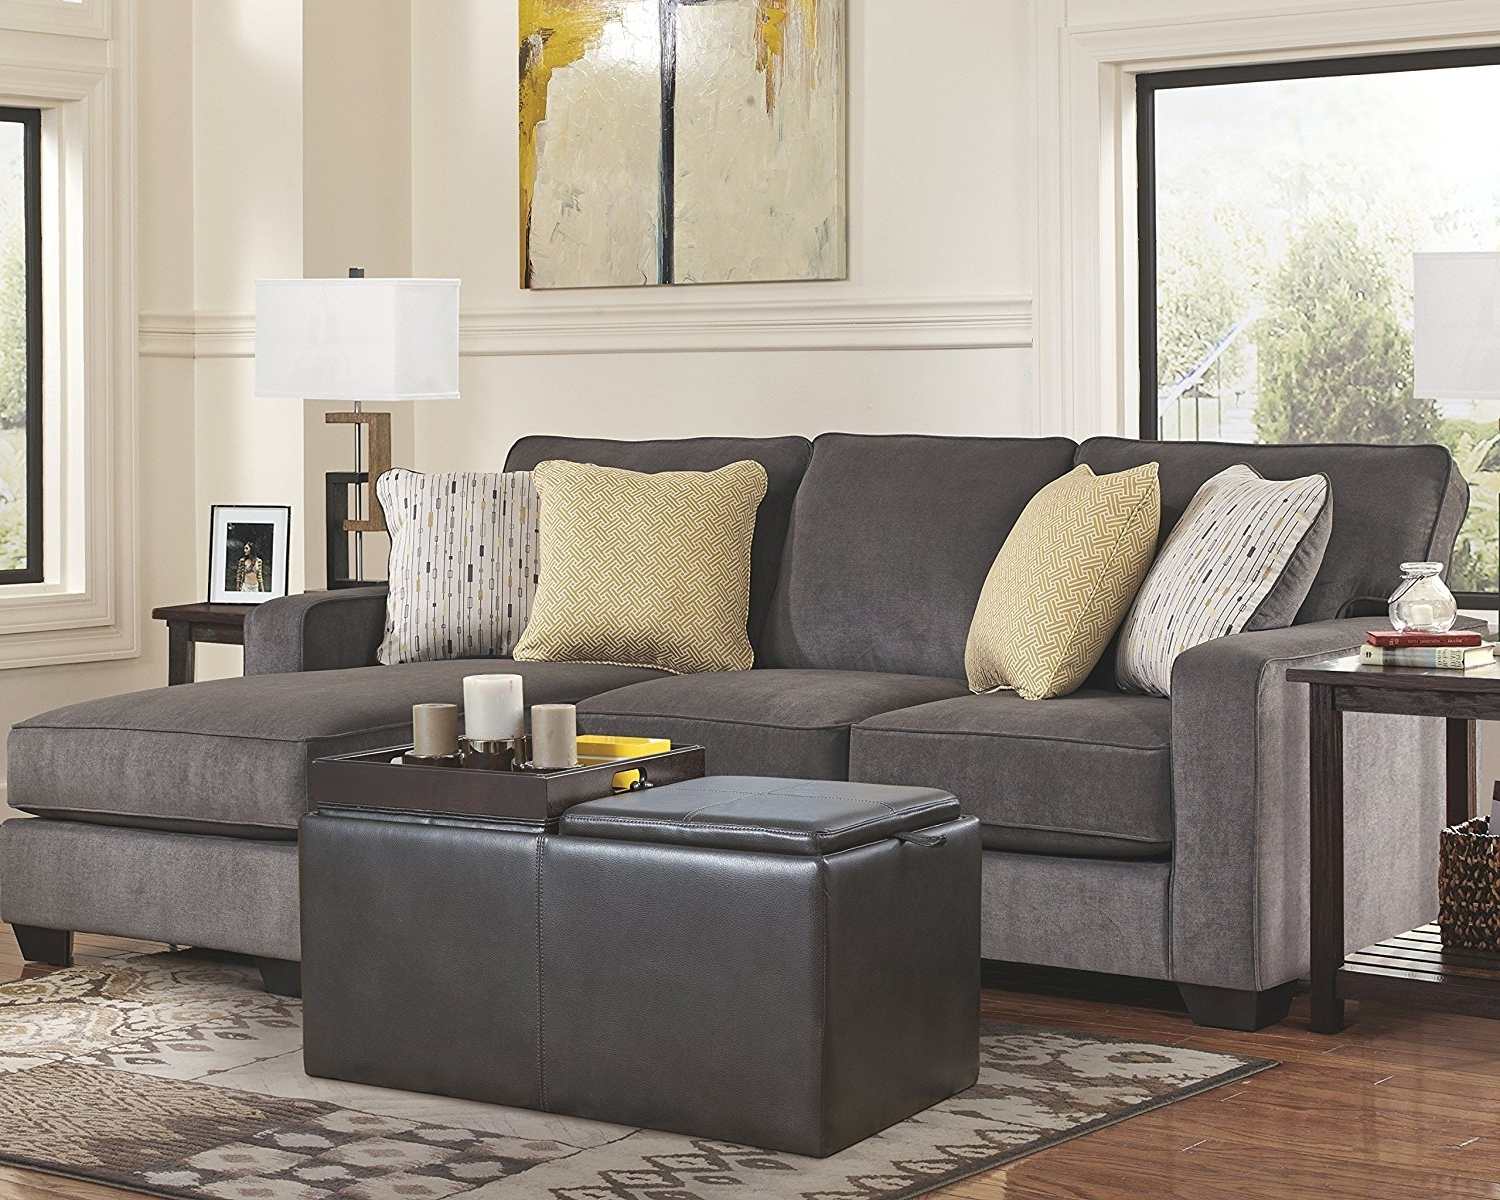 Hodan Sofas With Chaise With Trendy Amazon: Ashley Hodan 7970018 93 Inch Sofa Chaise With Pillows (View 8 of 15)